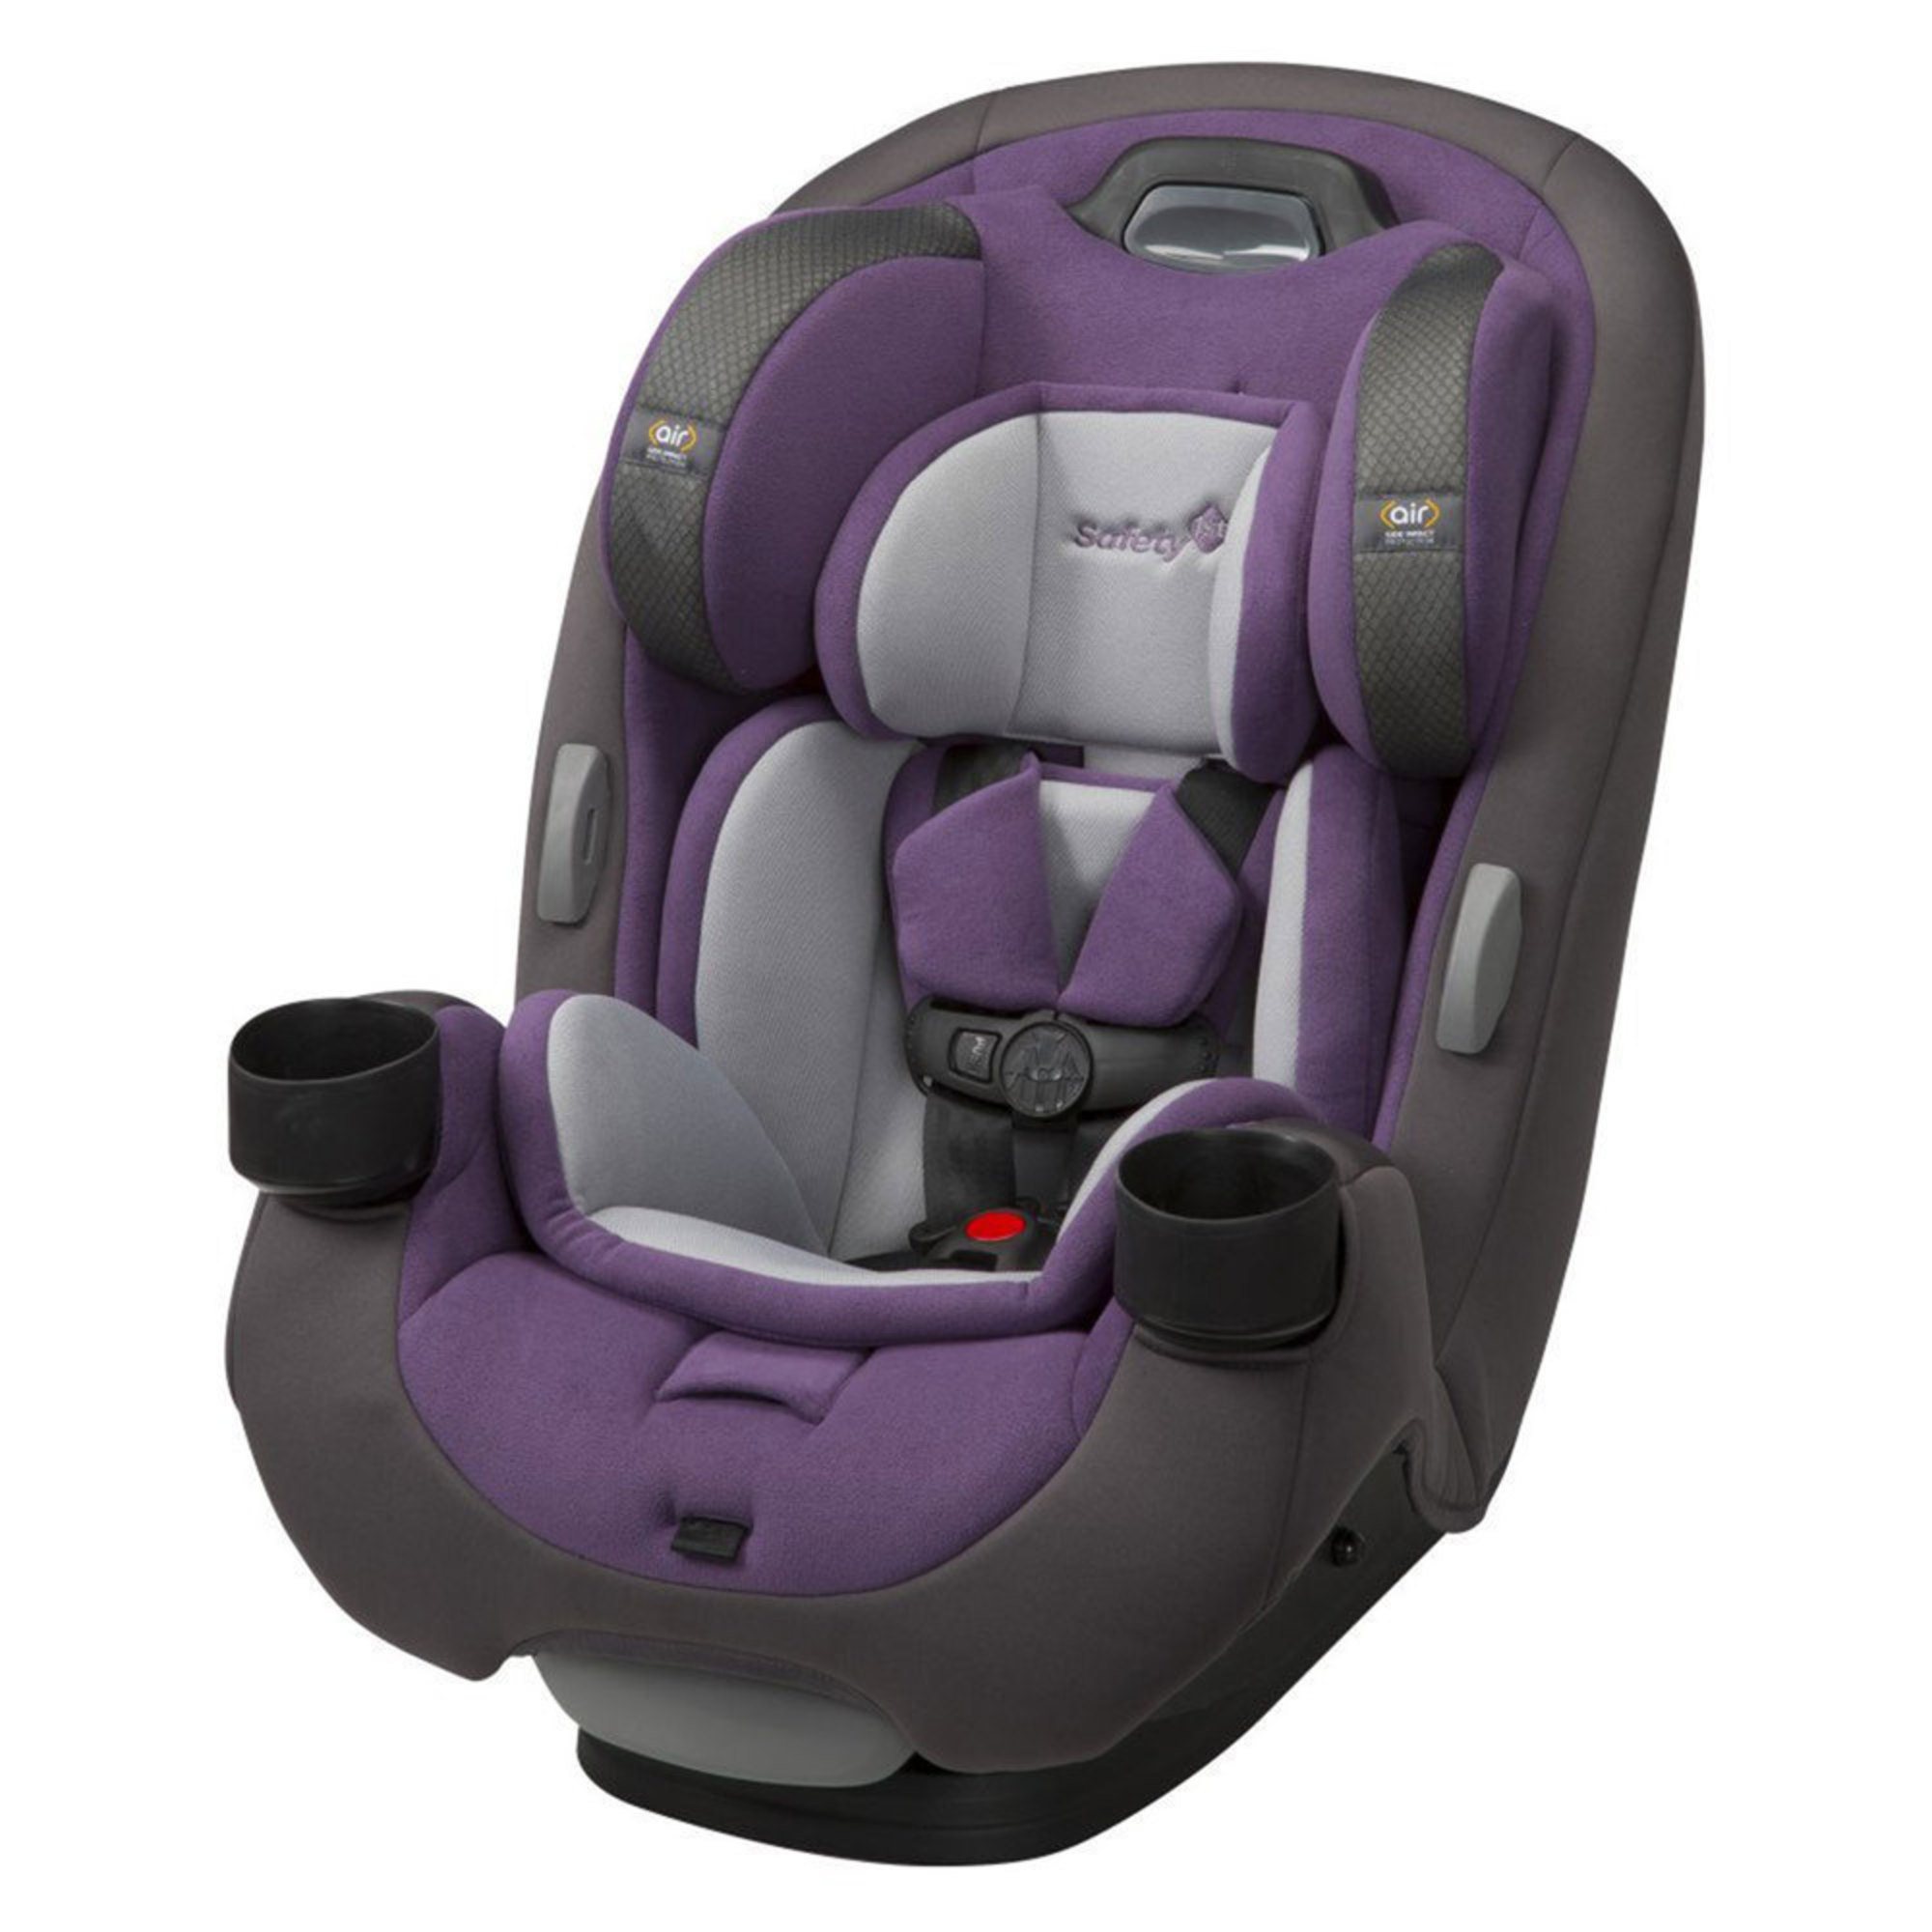 Safety 1st Grow & Go Ex Air 3-in-1 Convertible Car Seat